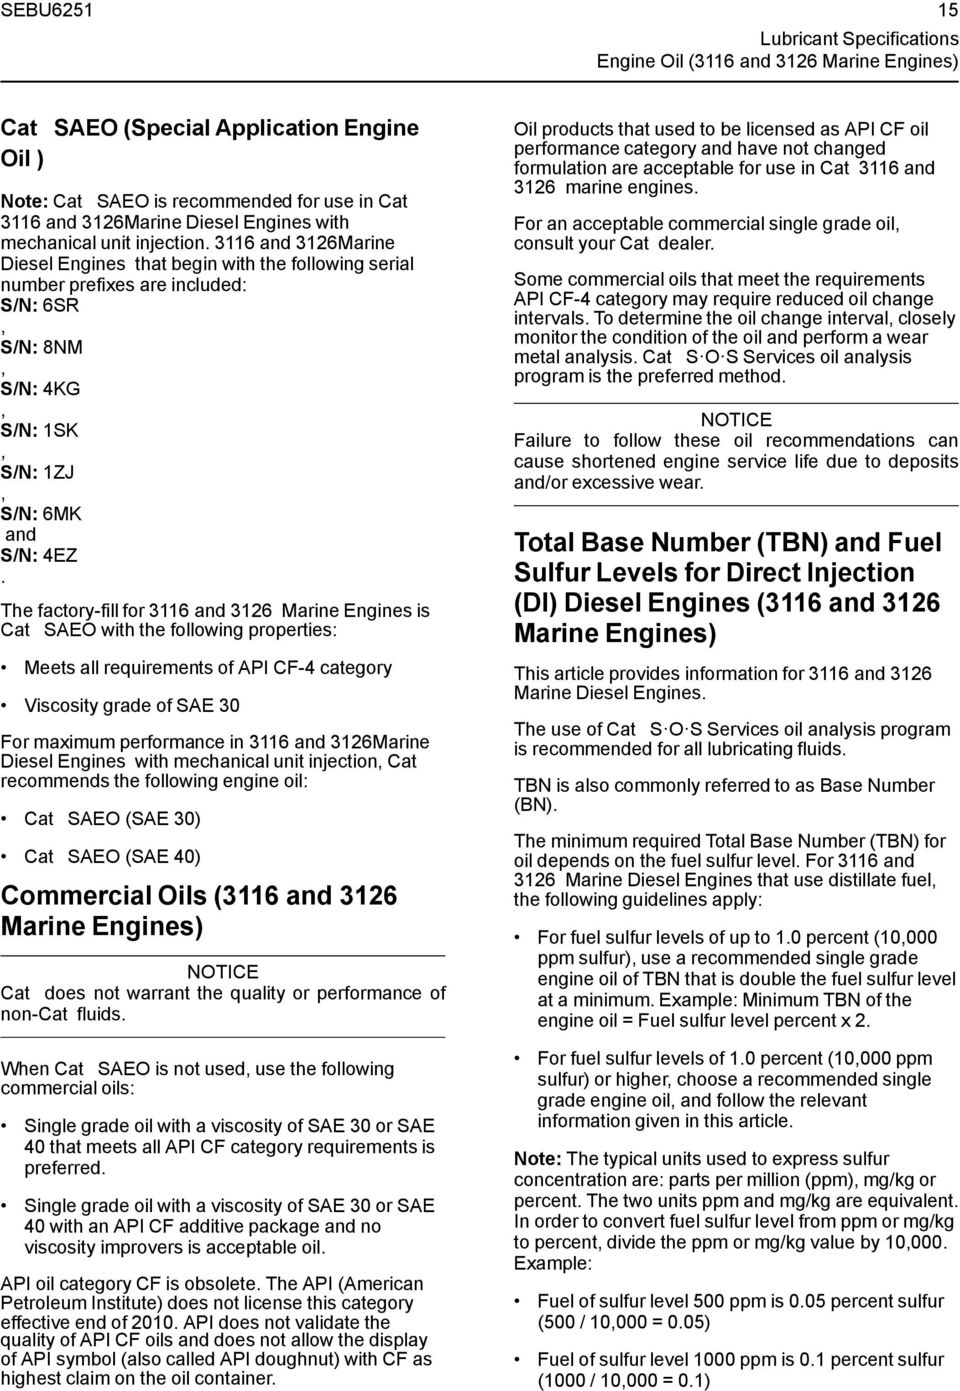 Cat Commercial Diesel Engine Fluids Recommendations Pdf 3600 Gas Diagram 3116 And 3126marine Engines That Begin With The Following Serial Number Prefixes Are Included